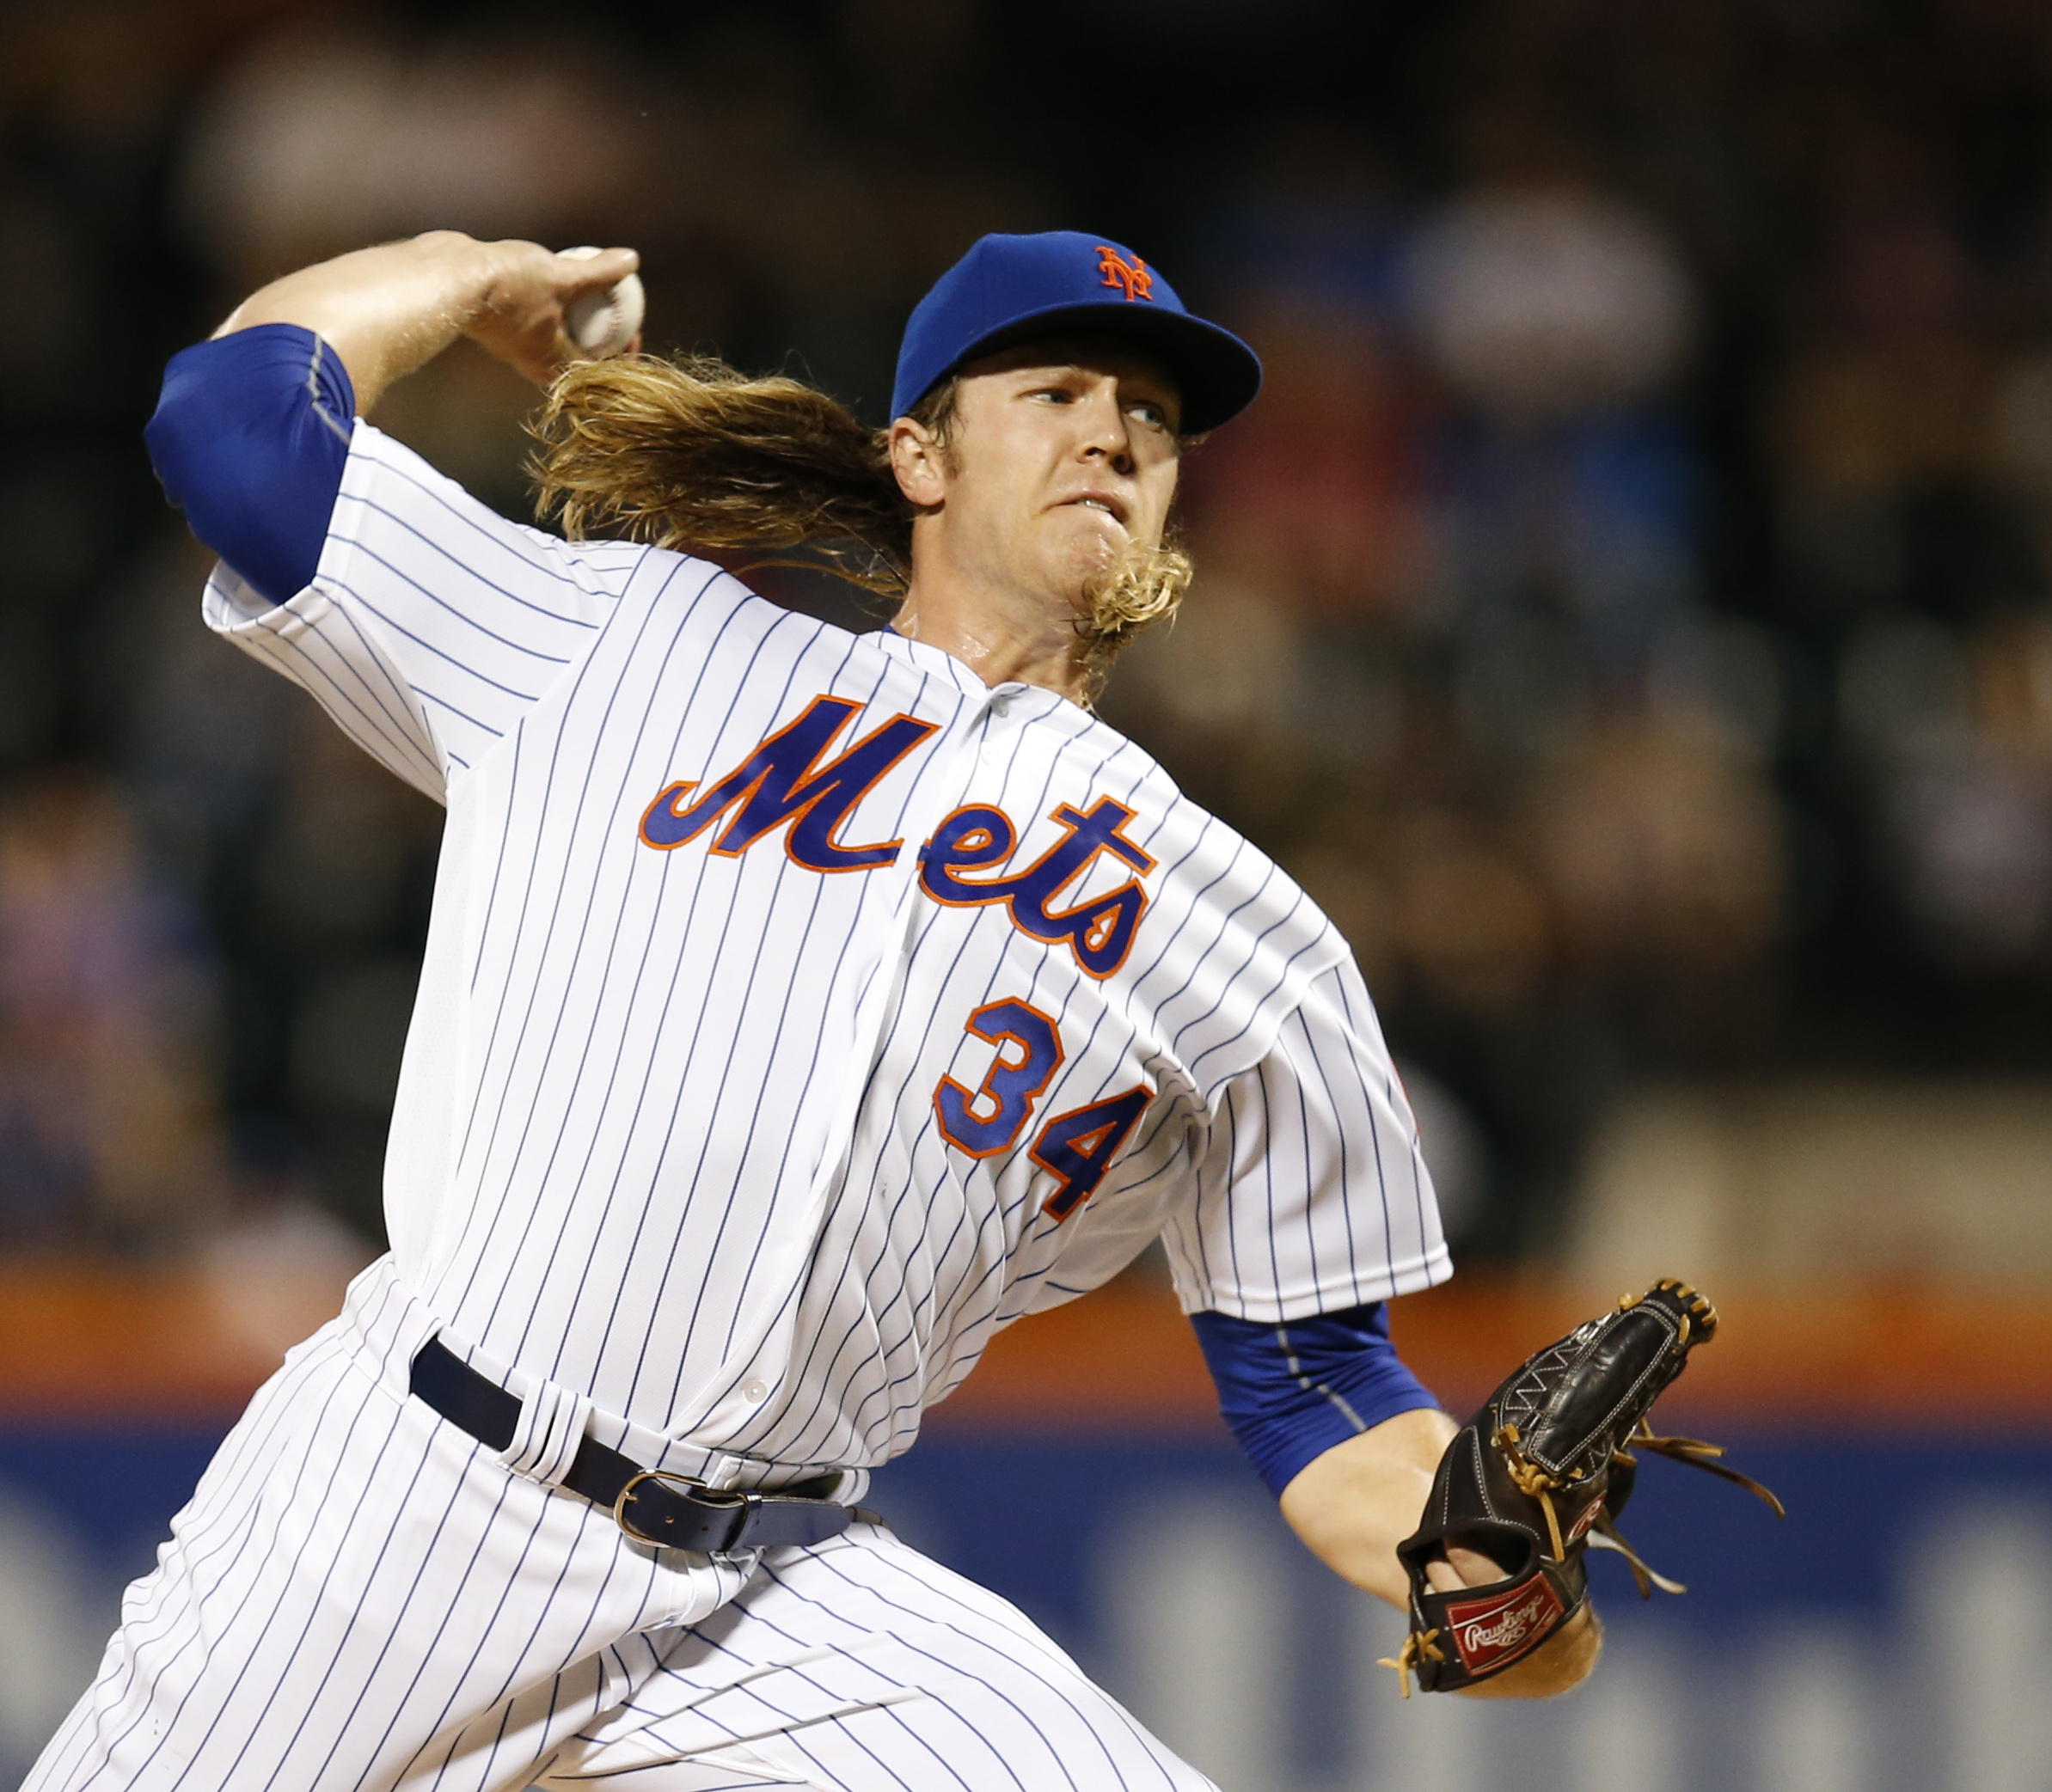 New York Mets' starting pitcher Noah Syndergaard delivers during the first inning of a baseball game against the Atlanta Braves, Monday, Sept. 19, 2016, in New York. (AP Photo/Kathy Willens)